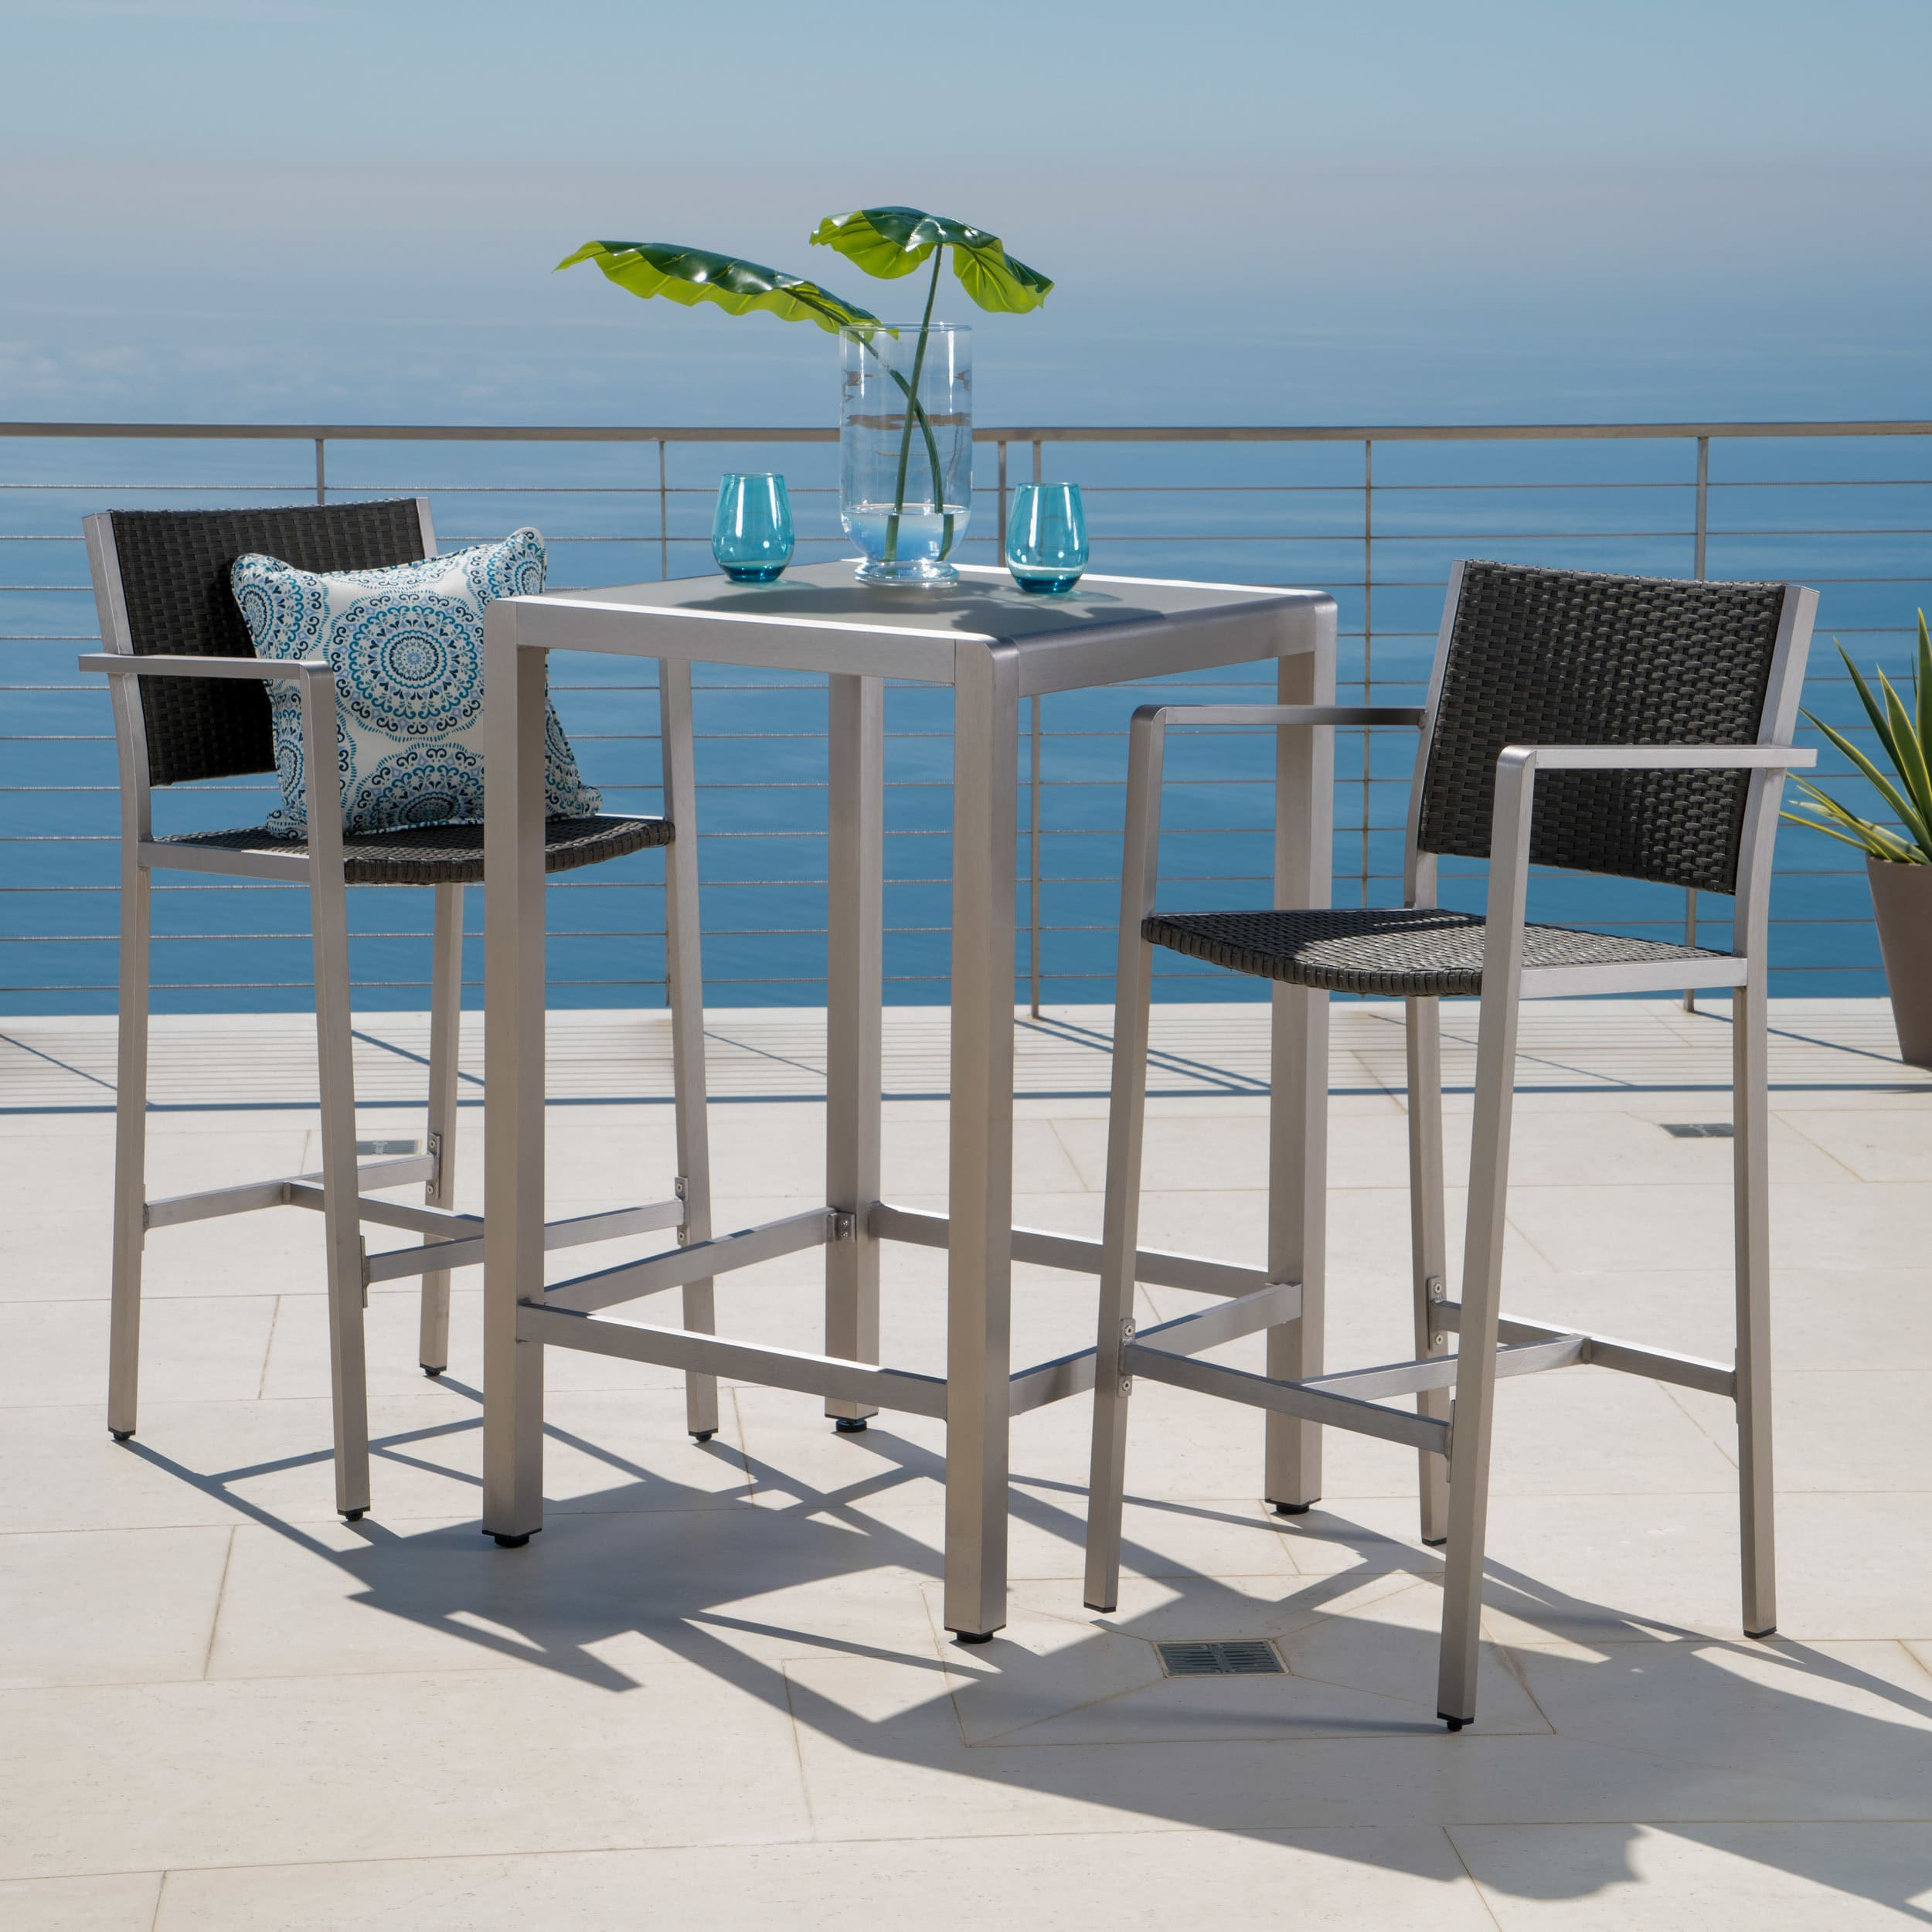 Christopher Knight Home Cape Coral Outdoor 3-piece Bar Set with Glass Table Top by